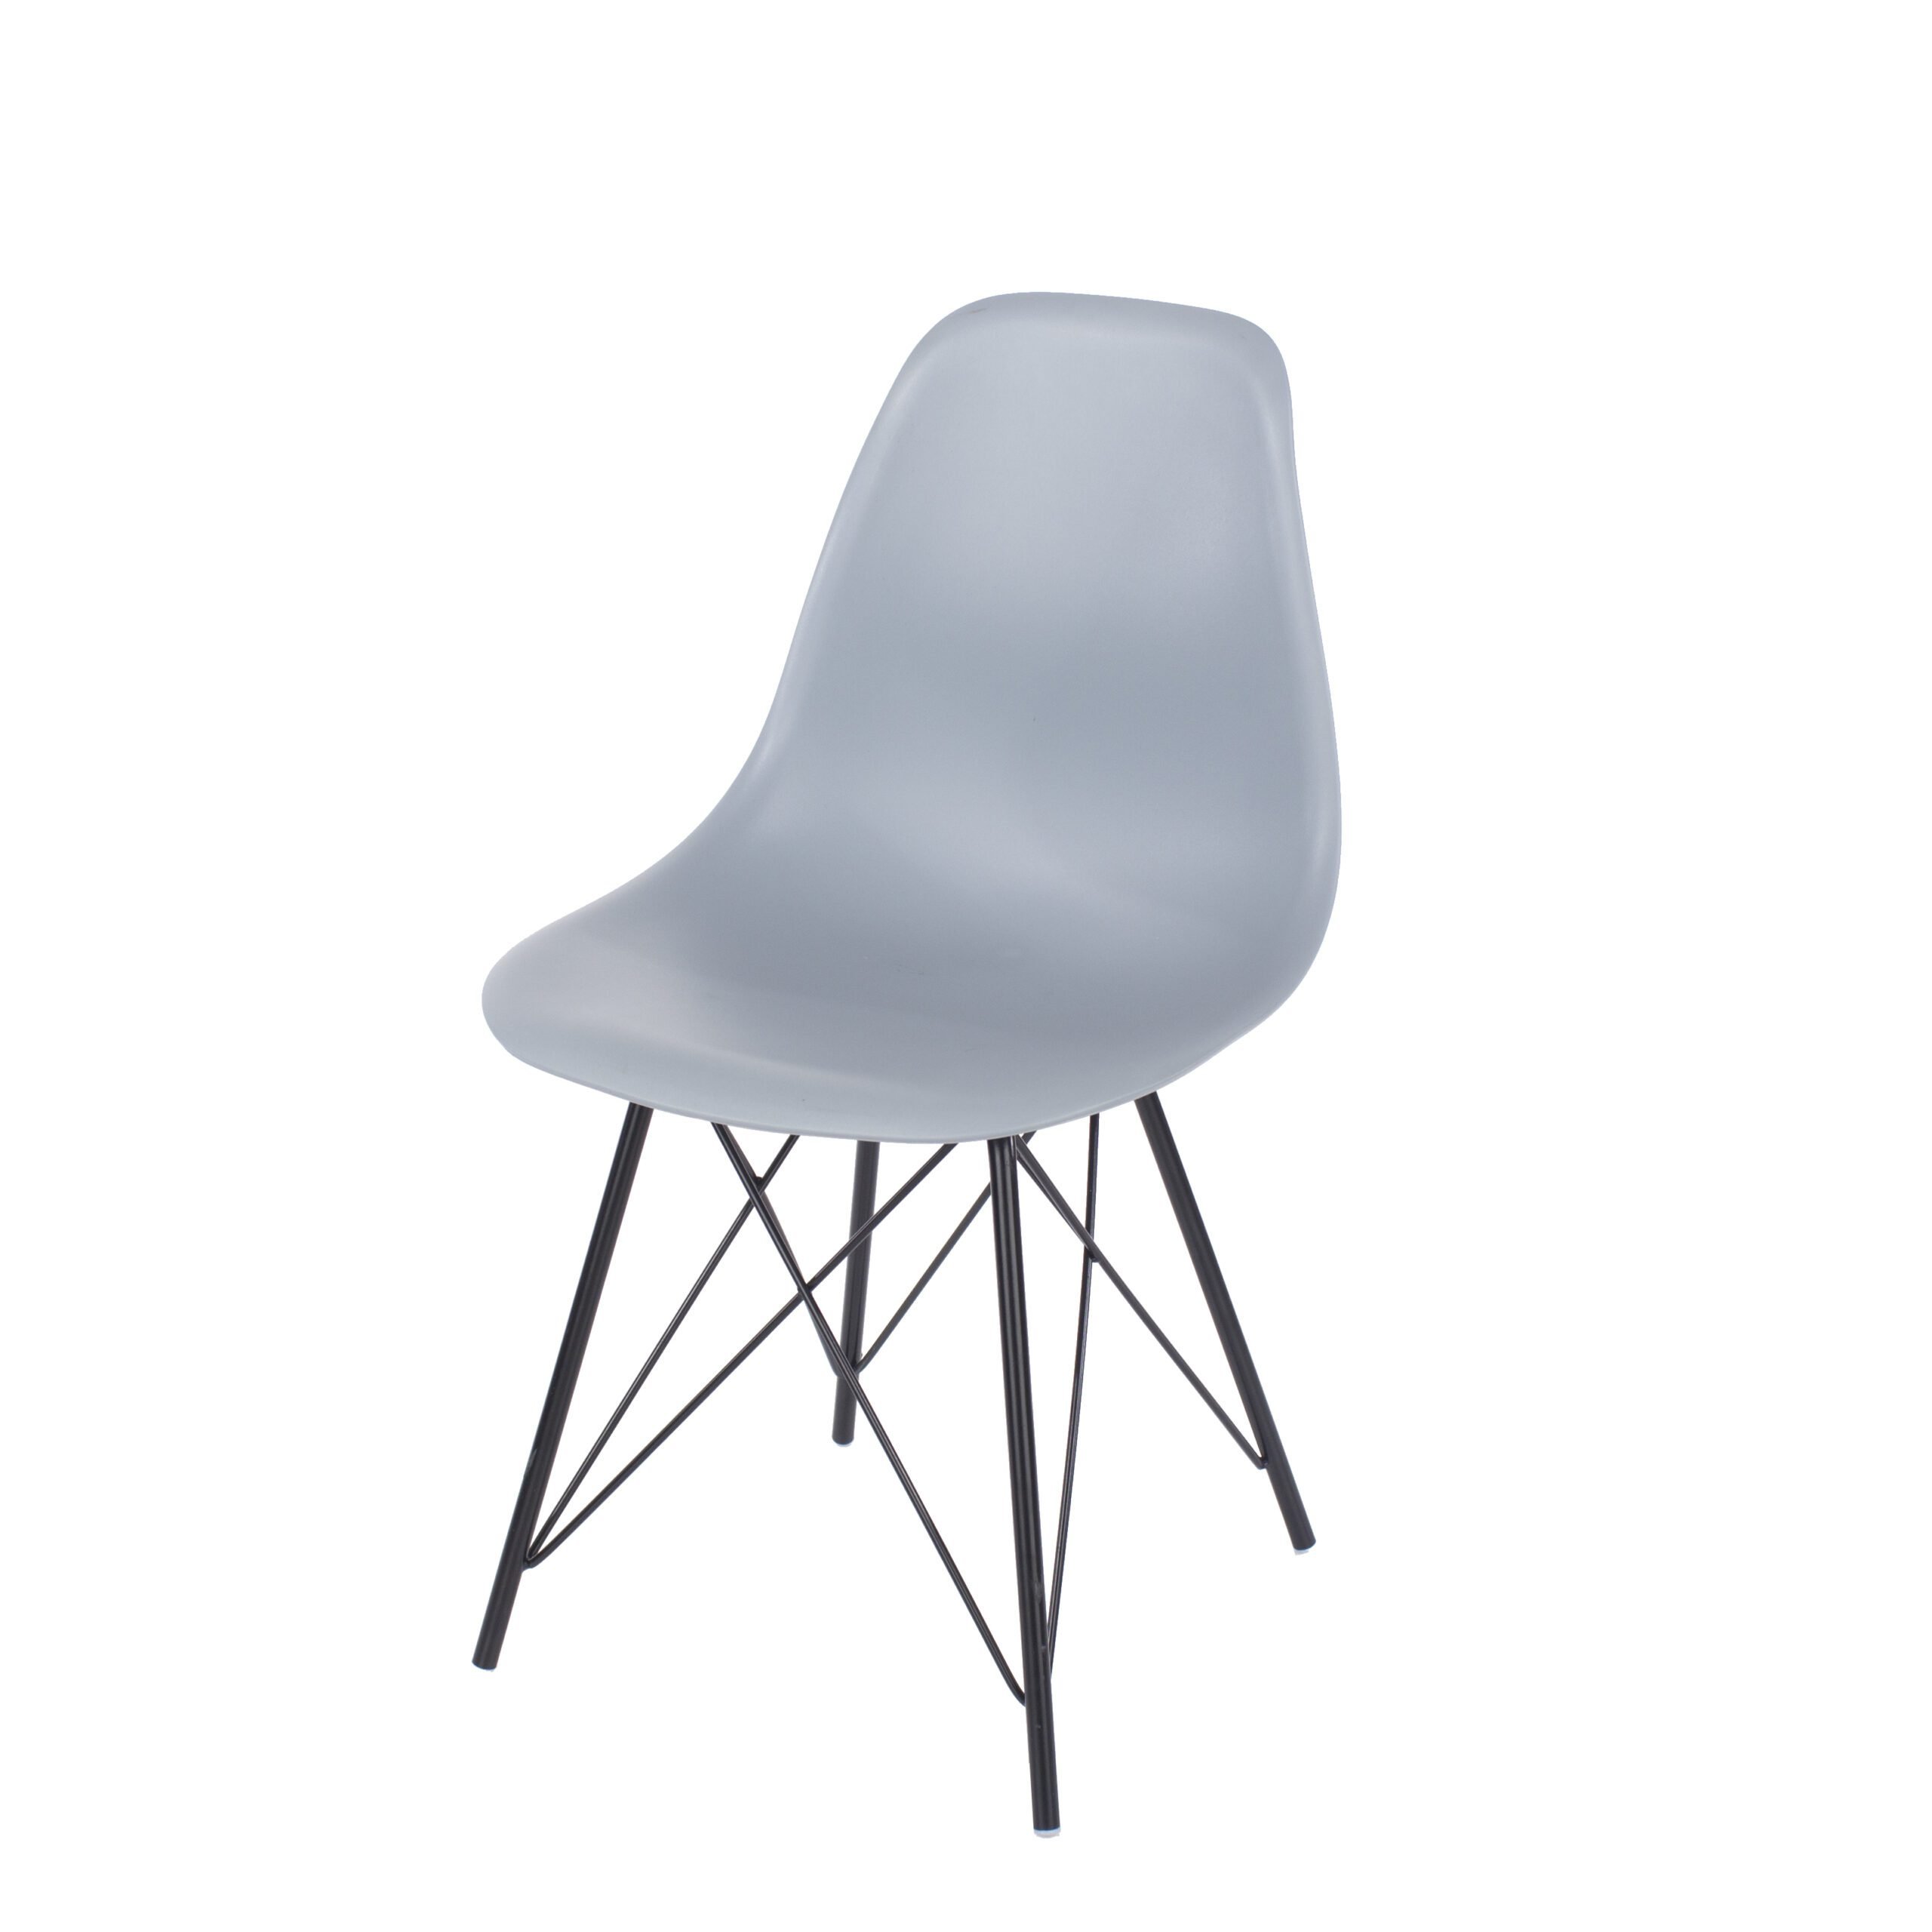 Penny grey plastic chairs with black metal legs (pair)